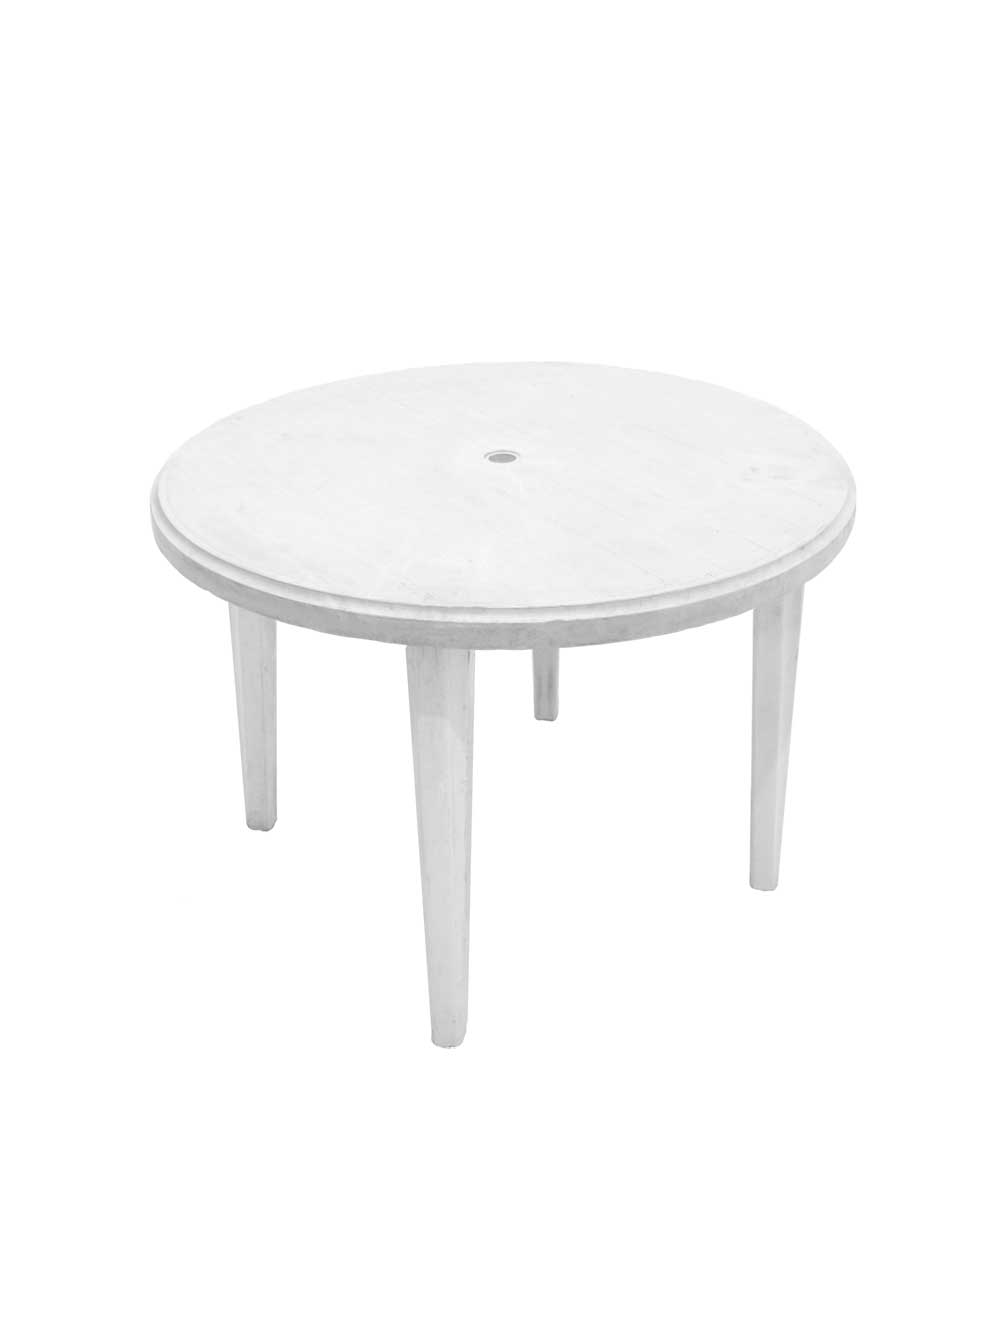 White Plastic Garden Table - Blacks Event Furniture